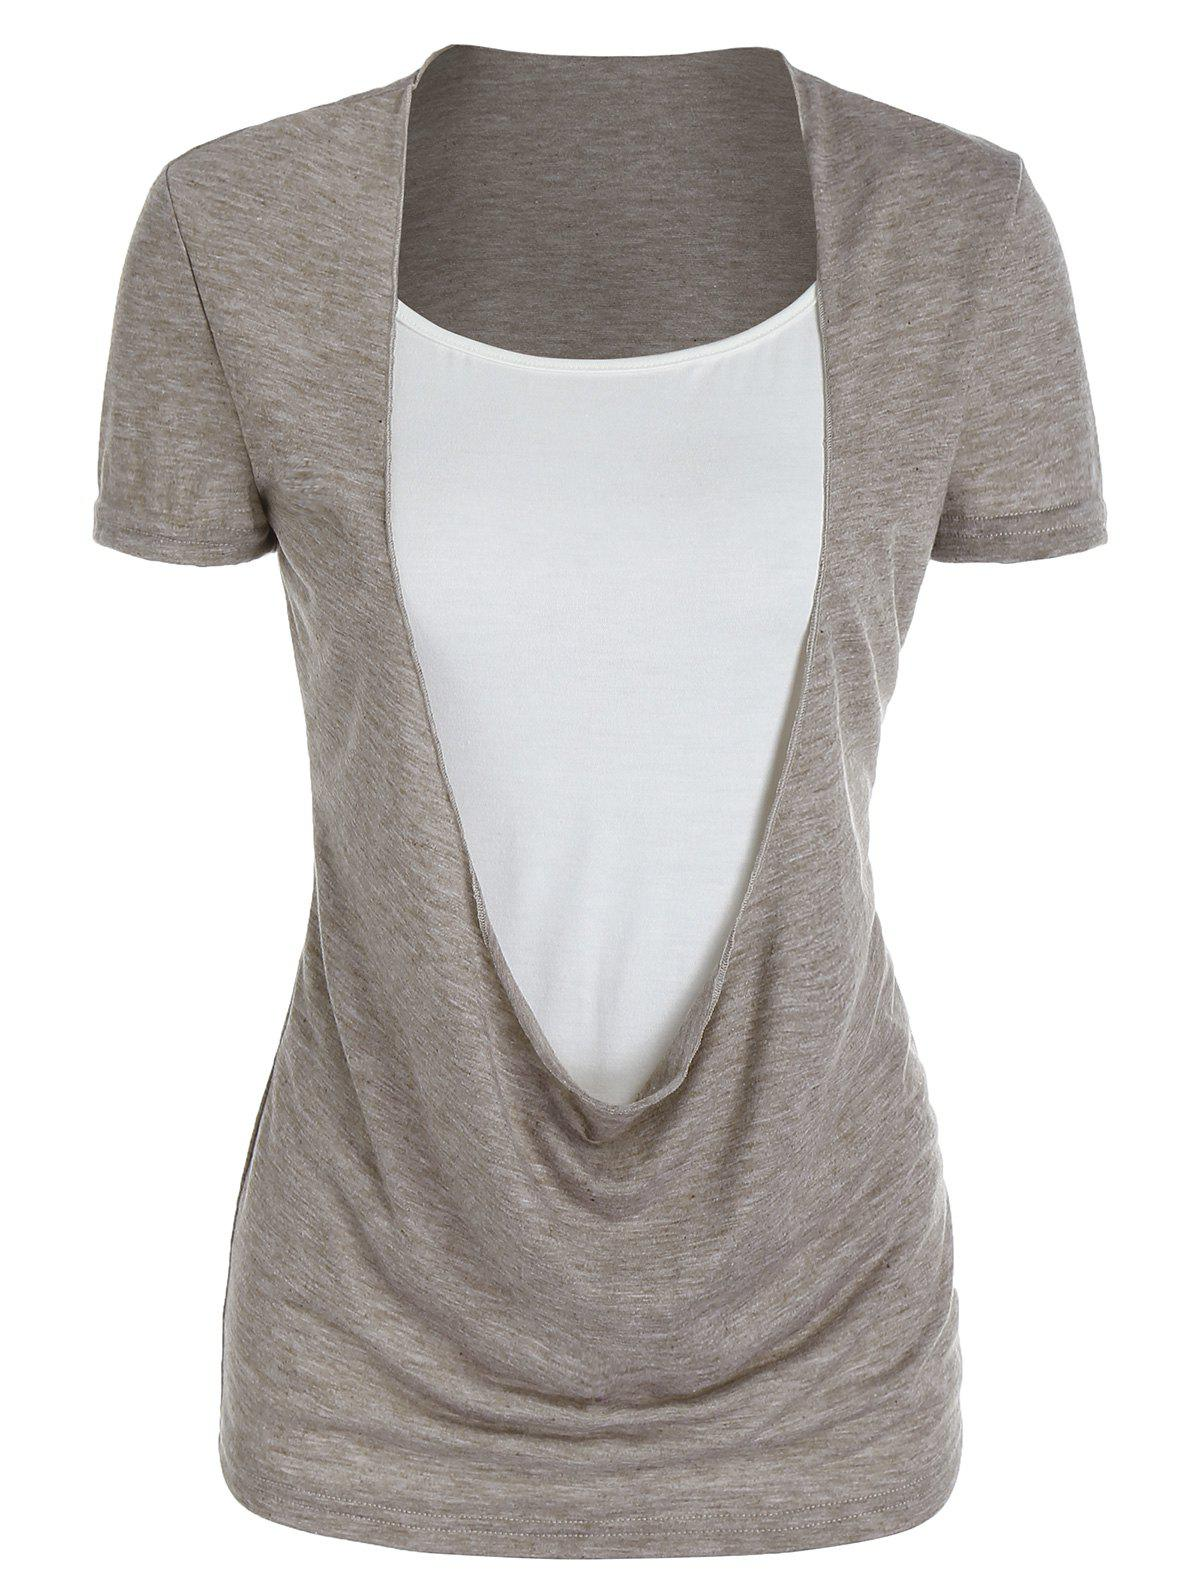 Best Draped Heathered Faux Twinset T-shirt